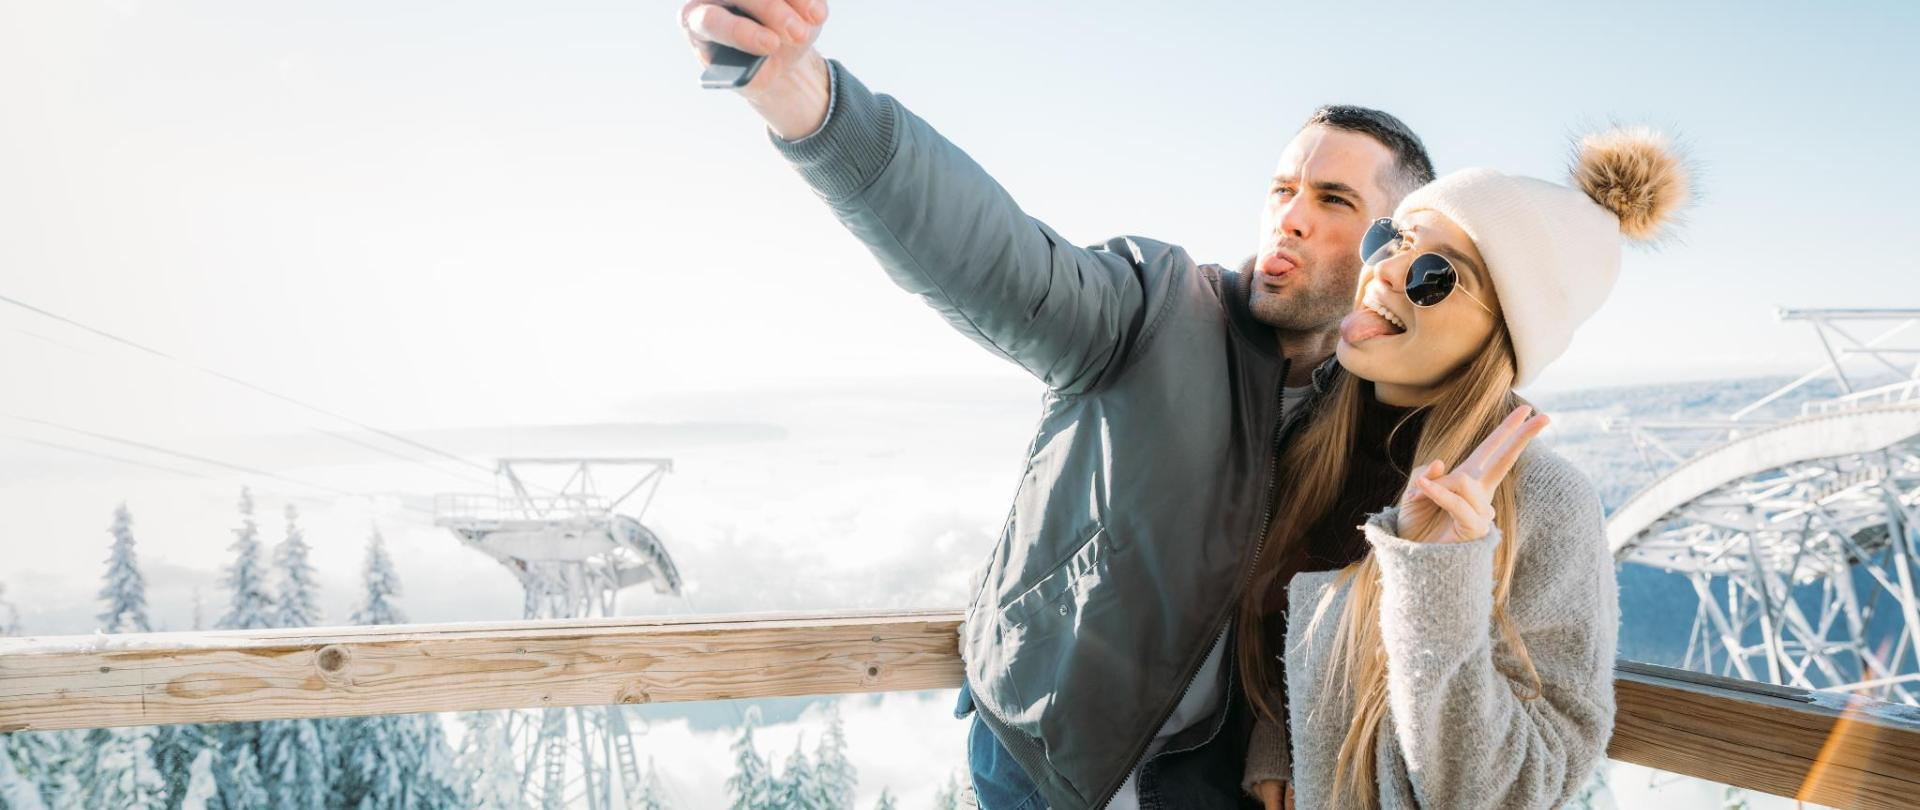 Grouse Mountain Selfie.jpg